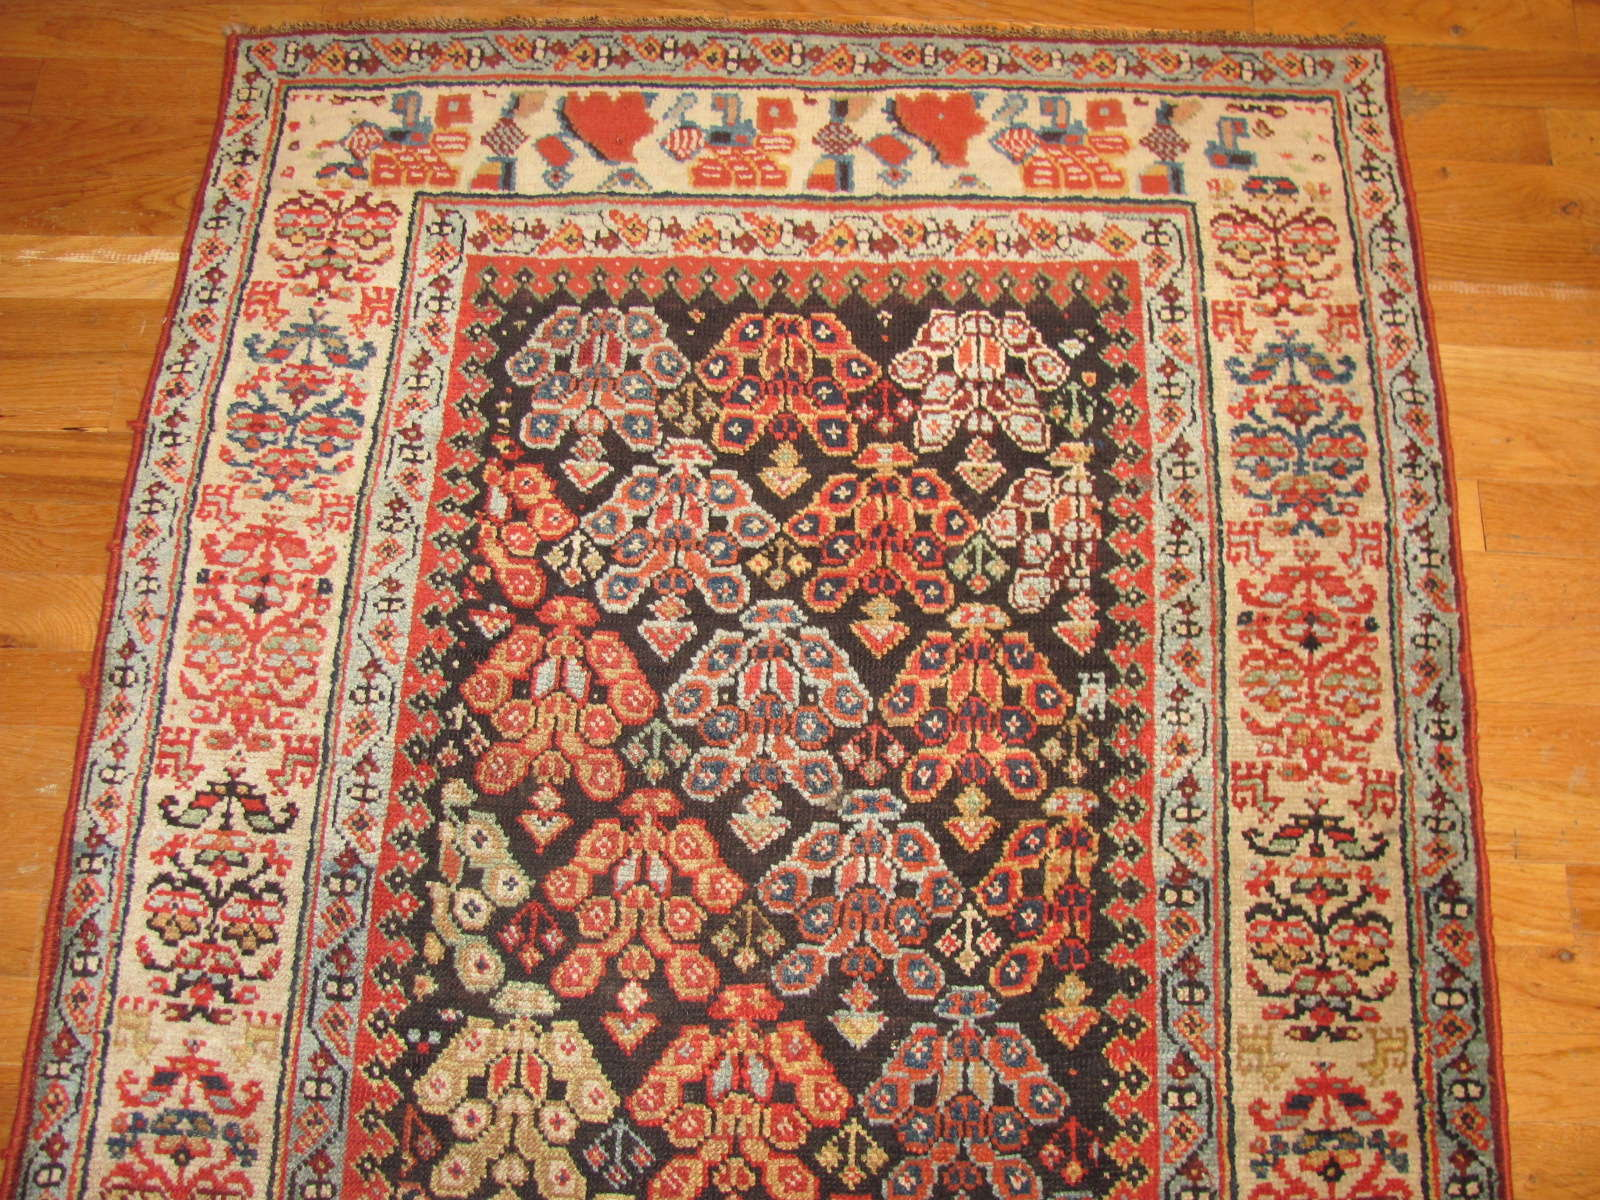 24457 antique persian kurd runner 3,3x10,2 -1